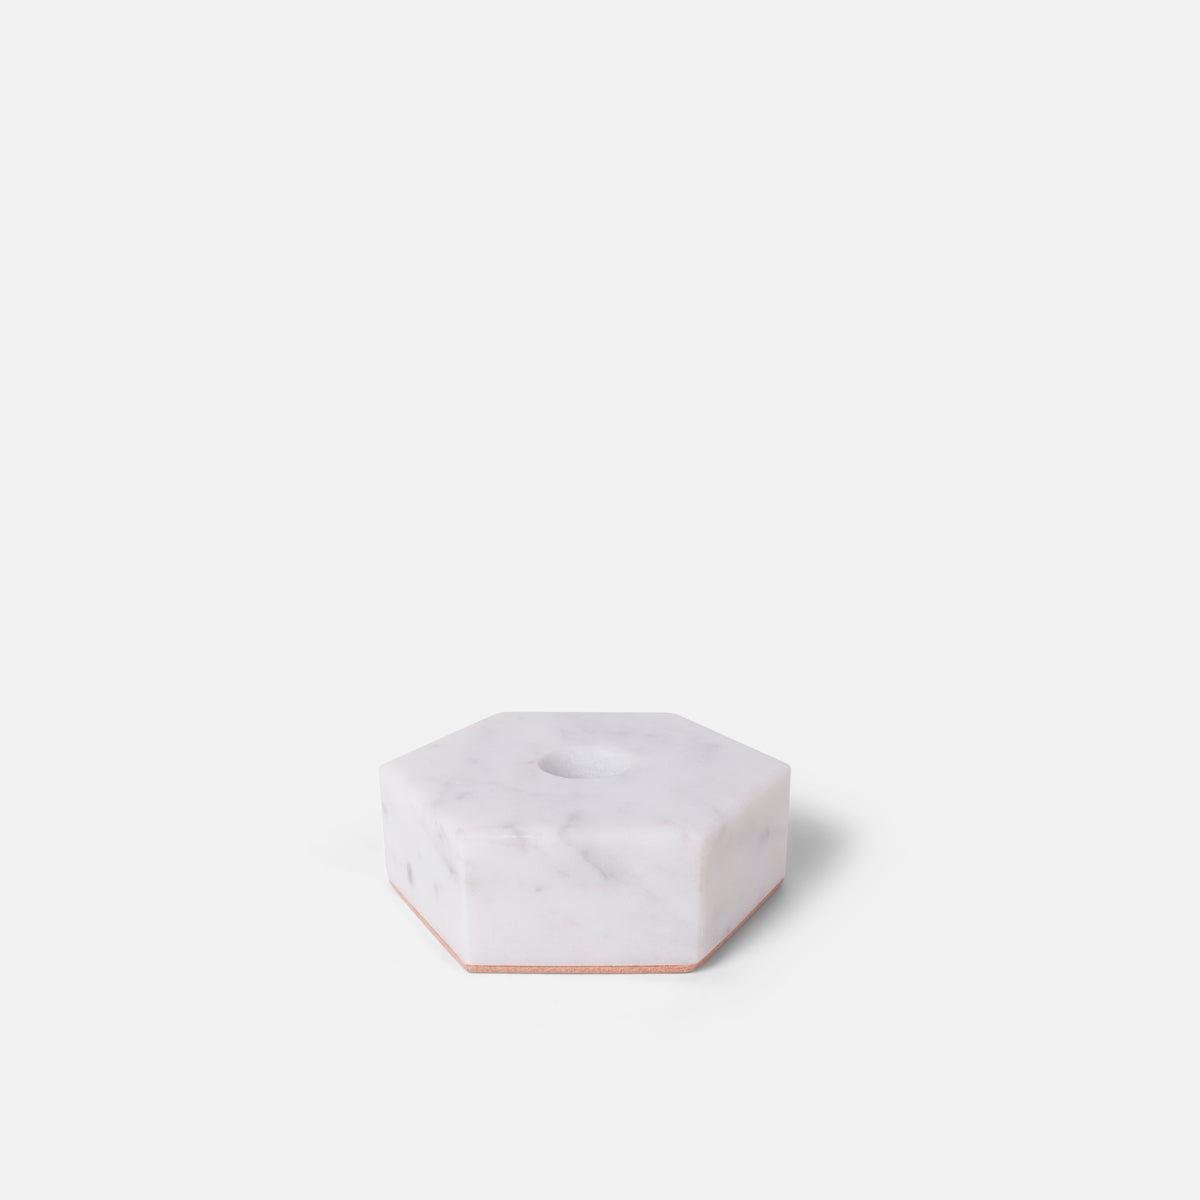 Stone Hexagon Candle Holder in White